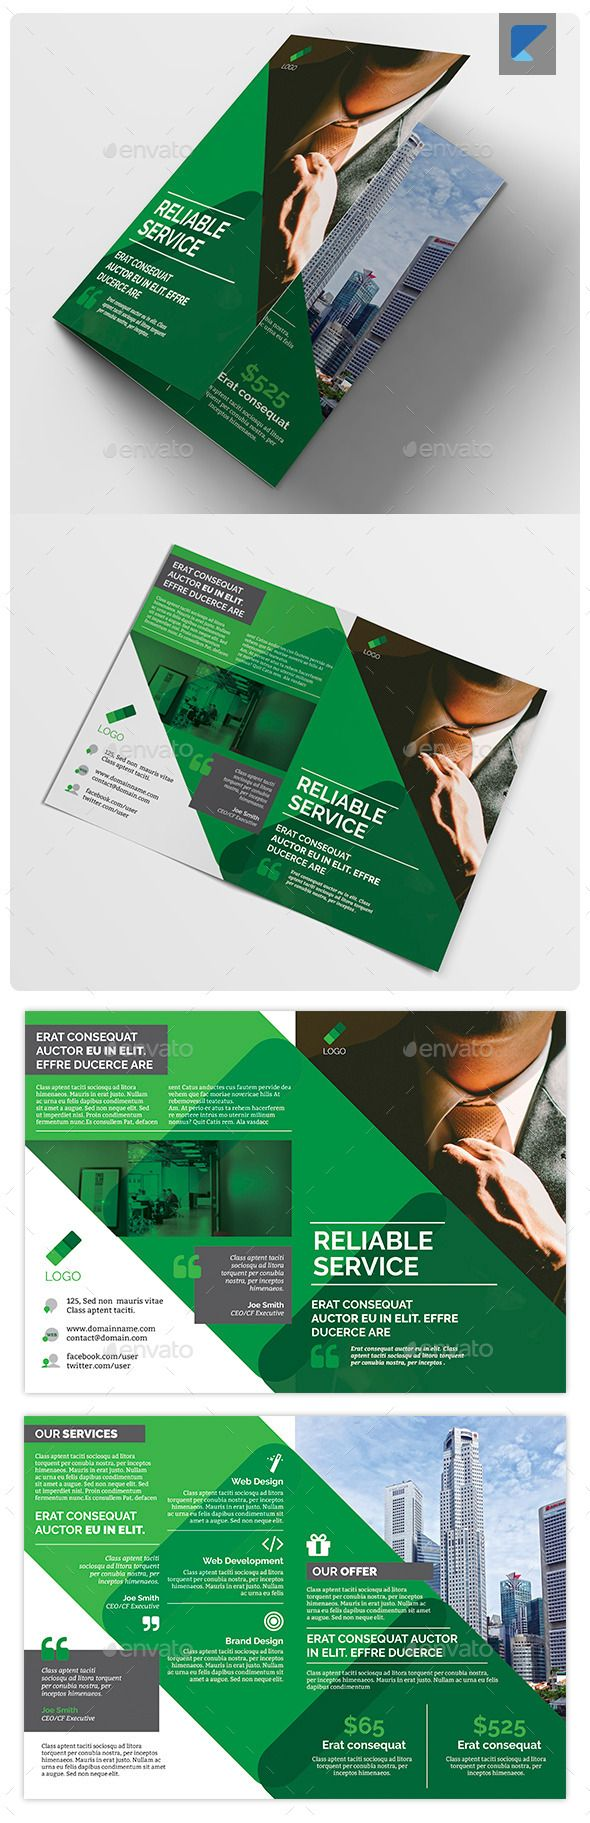 corporate bi fold brochure template - 1000 images about brochures templates on pinterest